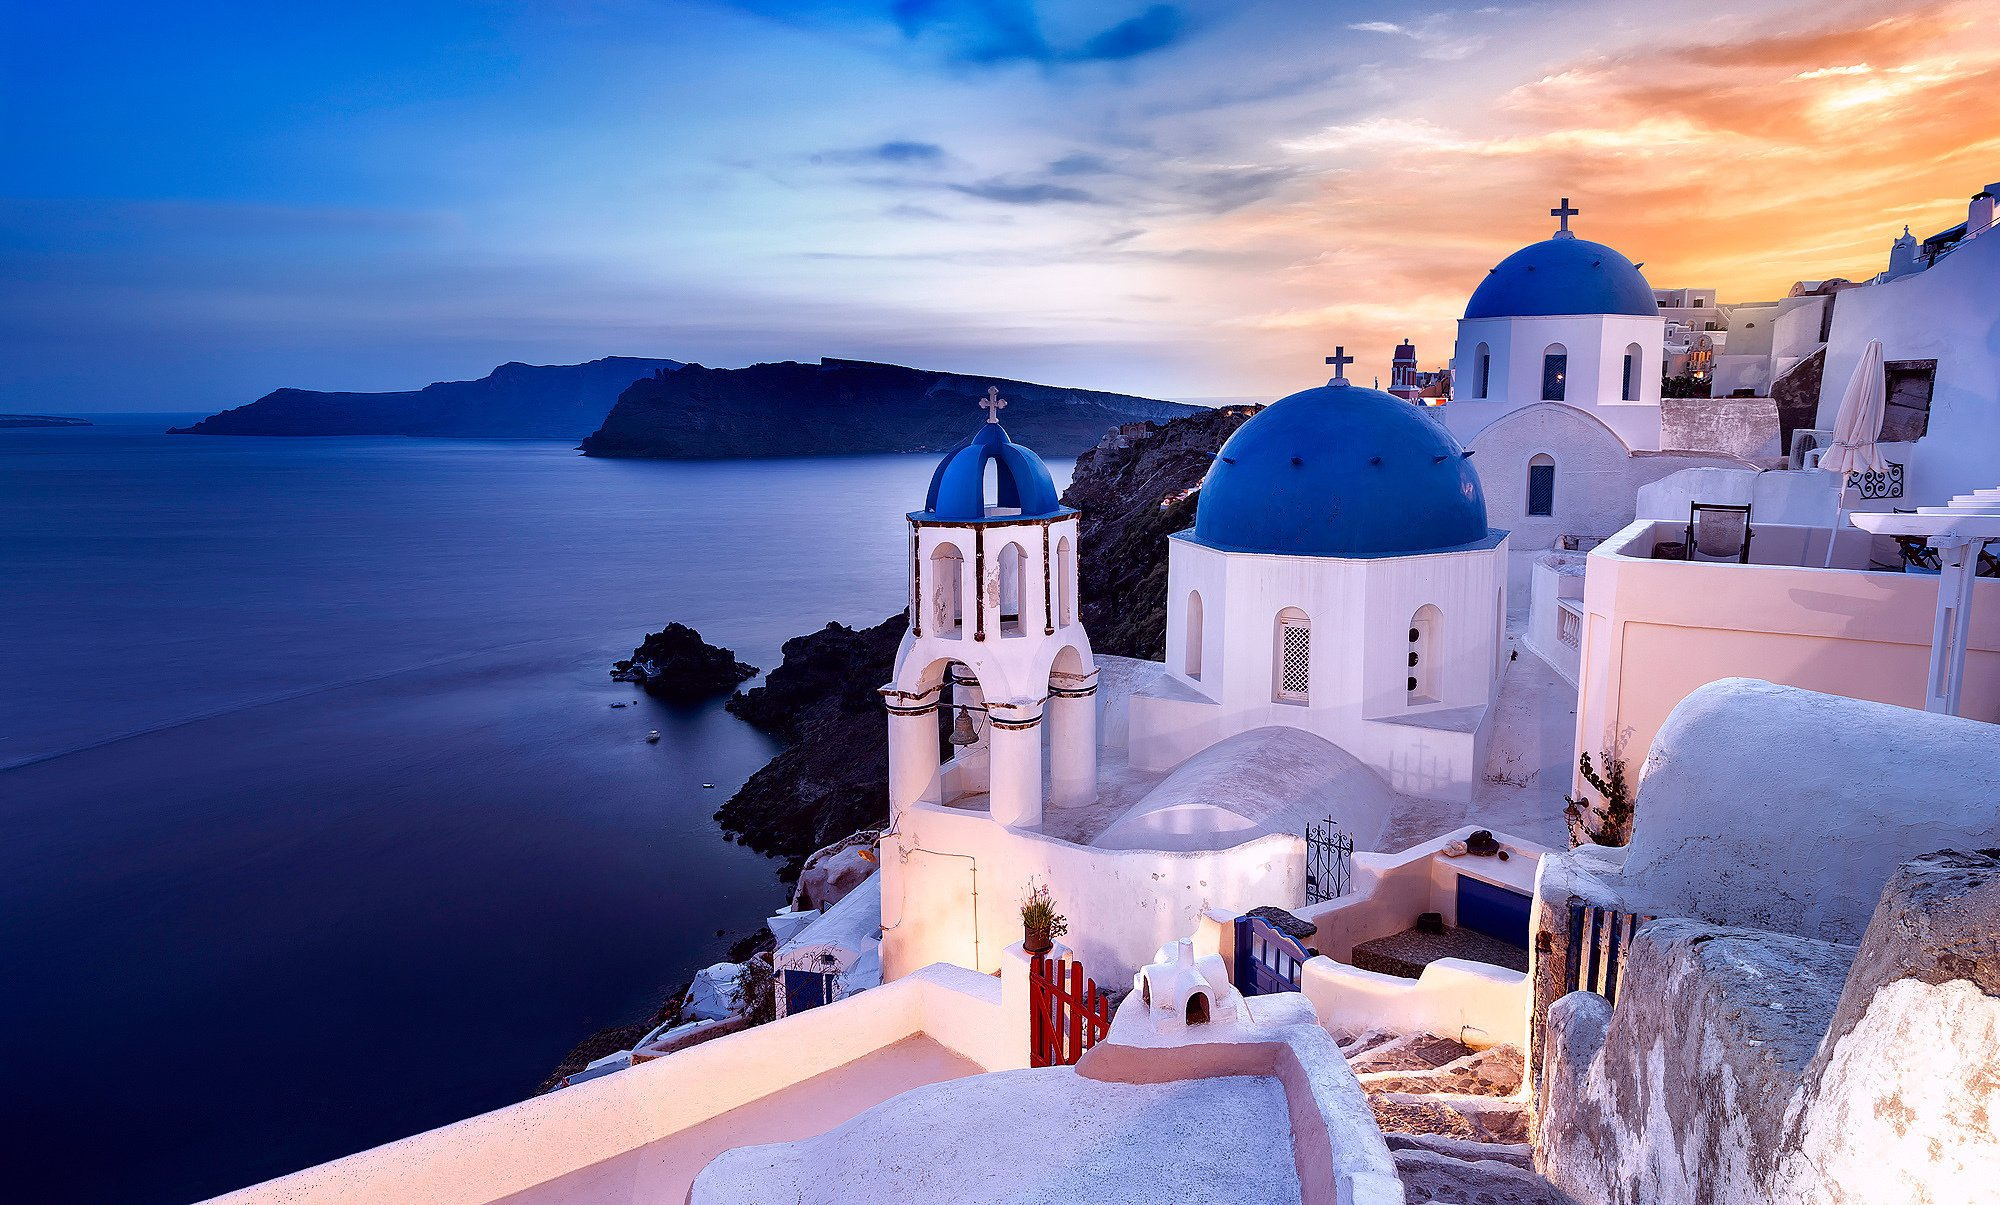 New Santorini Images GsFDcY HD Wallpapers 2000x1205